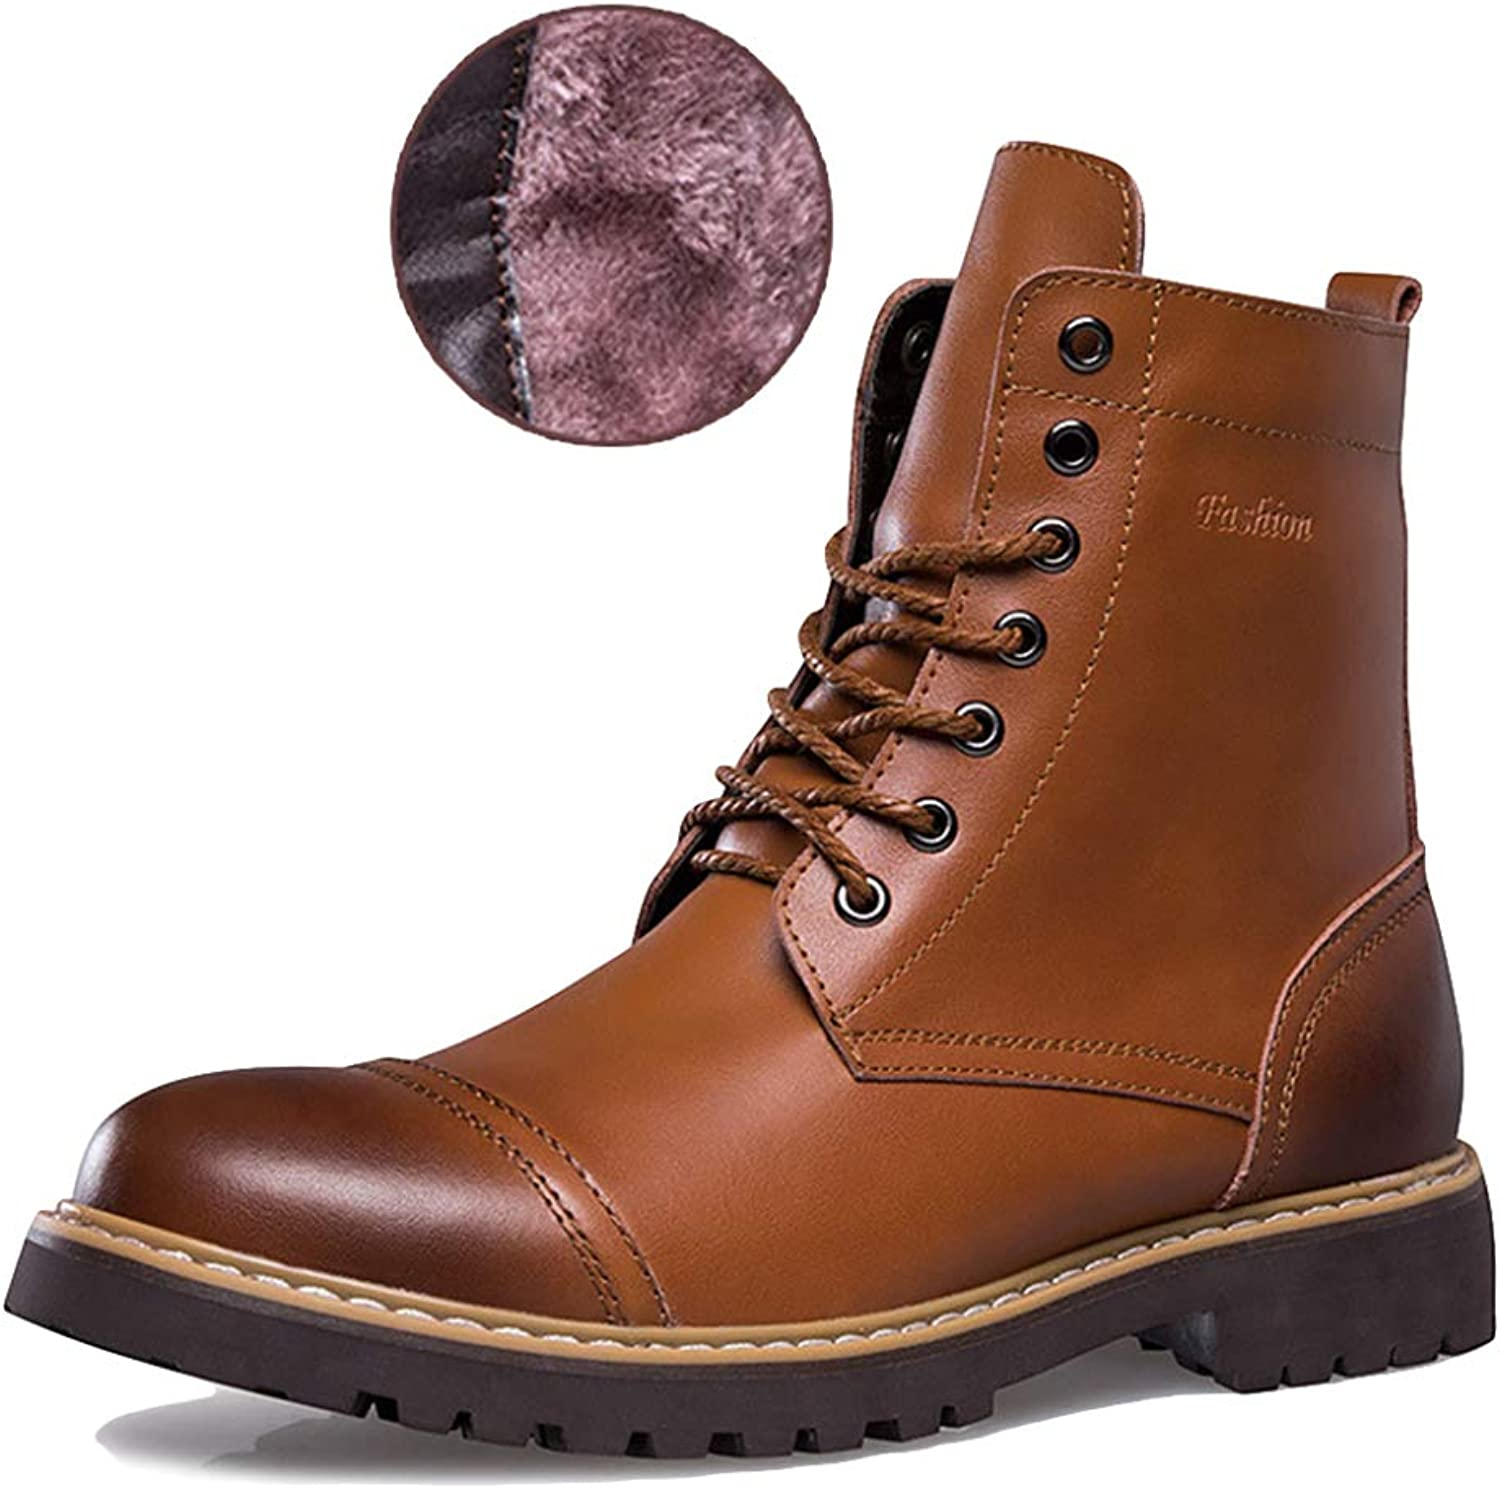 Men Genuine Leather Martin Boots High Tops Outdoor Hiking shoes Lace Ups Casual shoes Desert Boots For Treking Locomotive Cowboy Boots